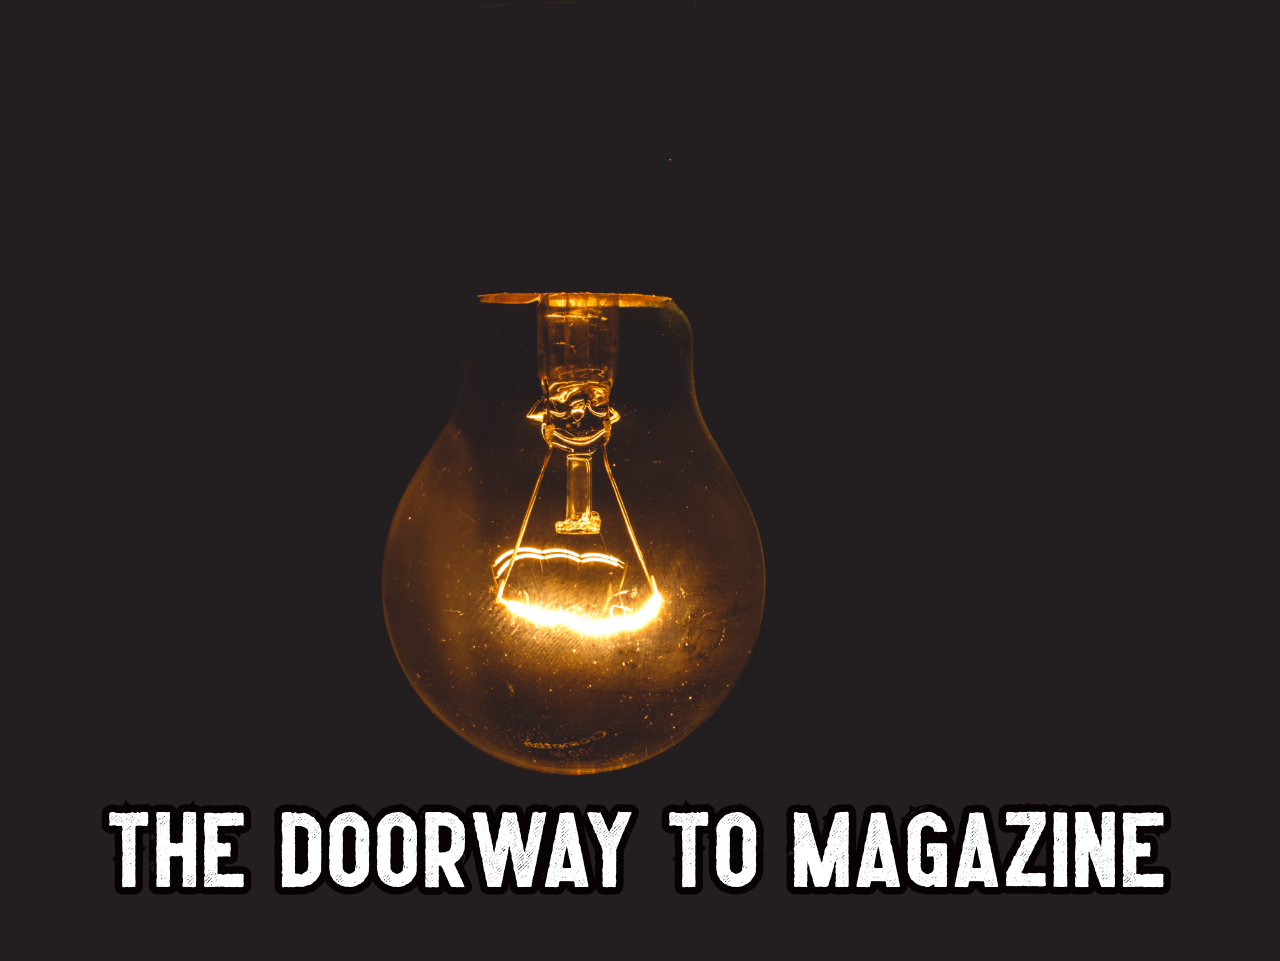 The Doorway to Magazine 2020